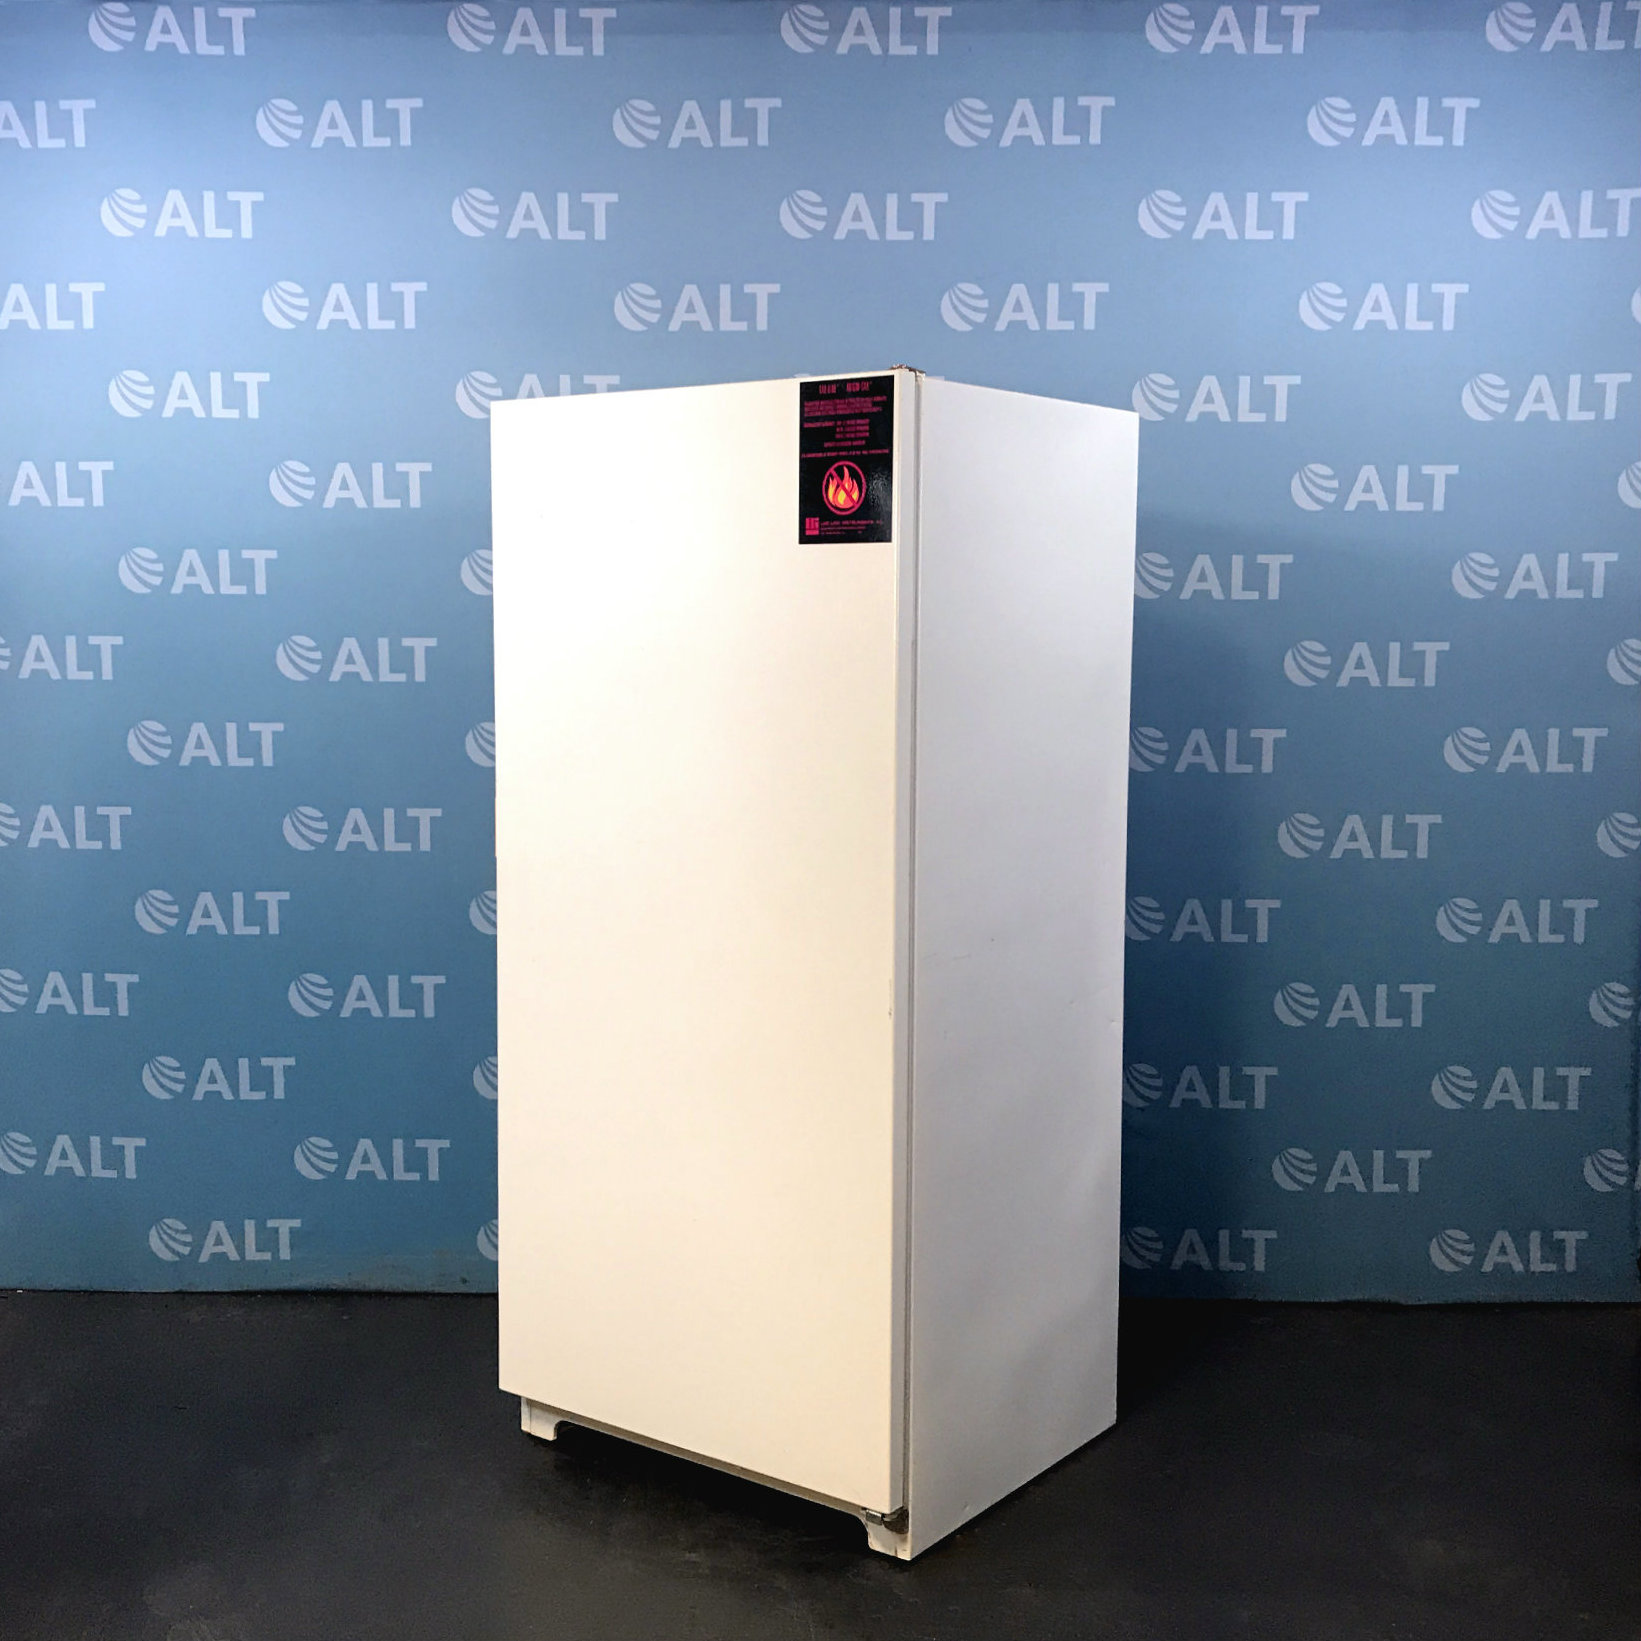 Lab-Line Frigid-Cab 3552-10 Flammable Material Storage -20 Degree Freezer Image